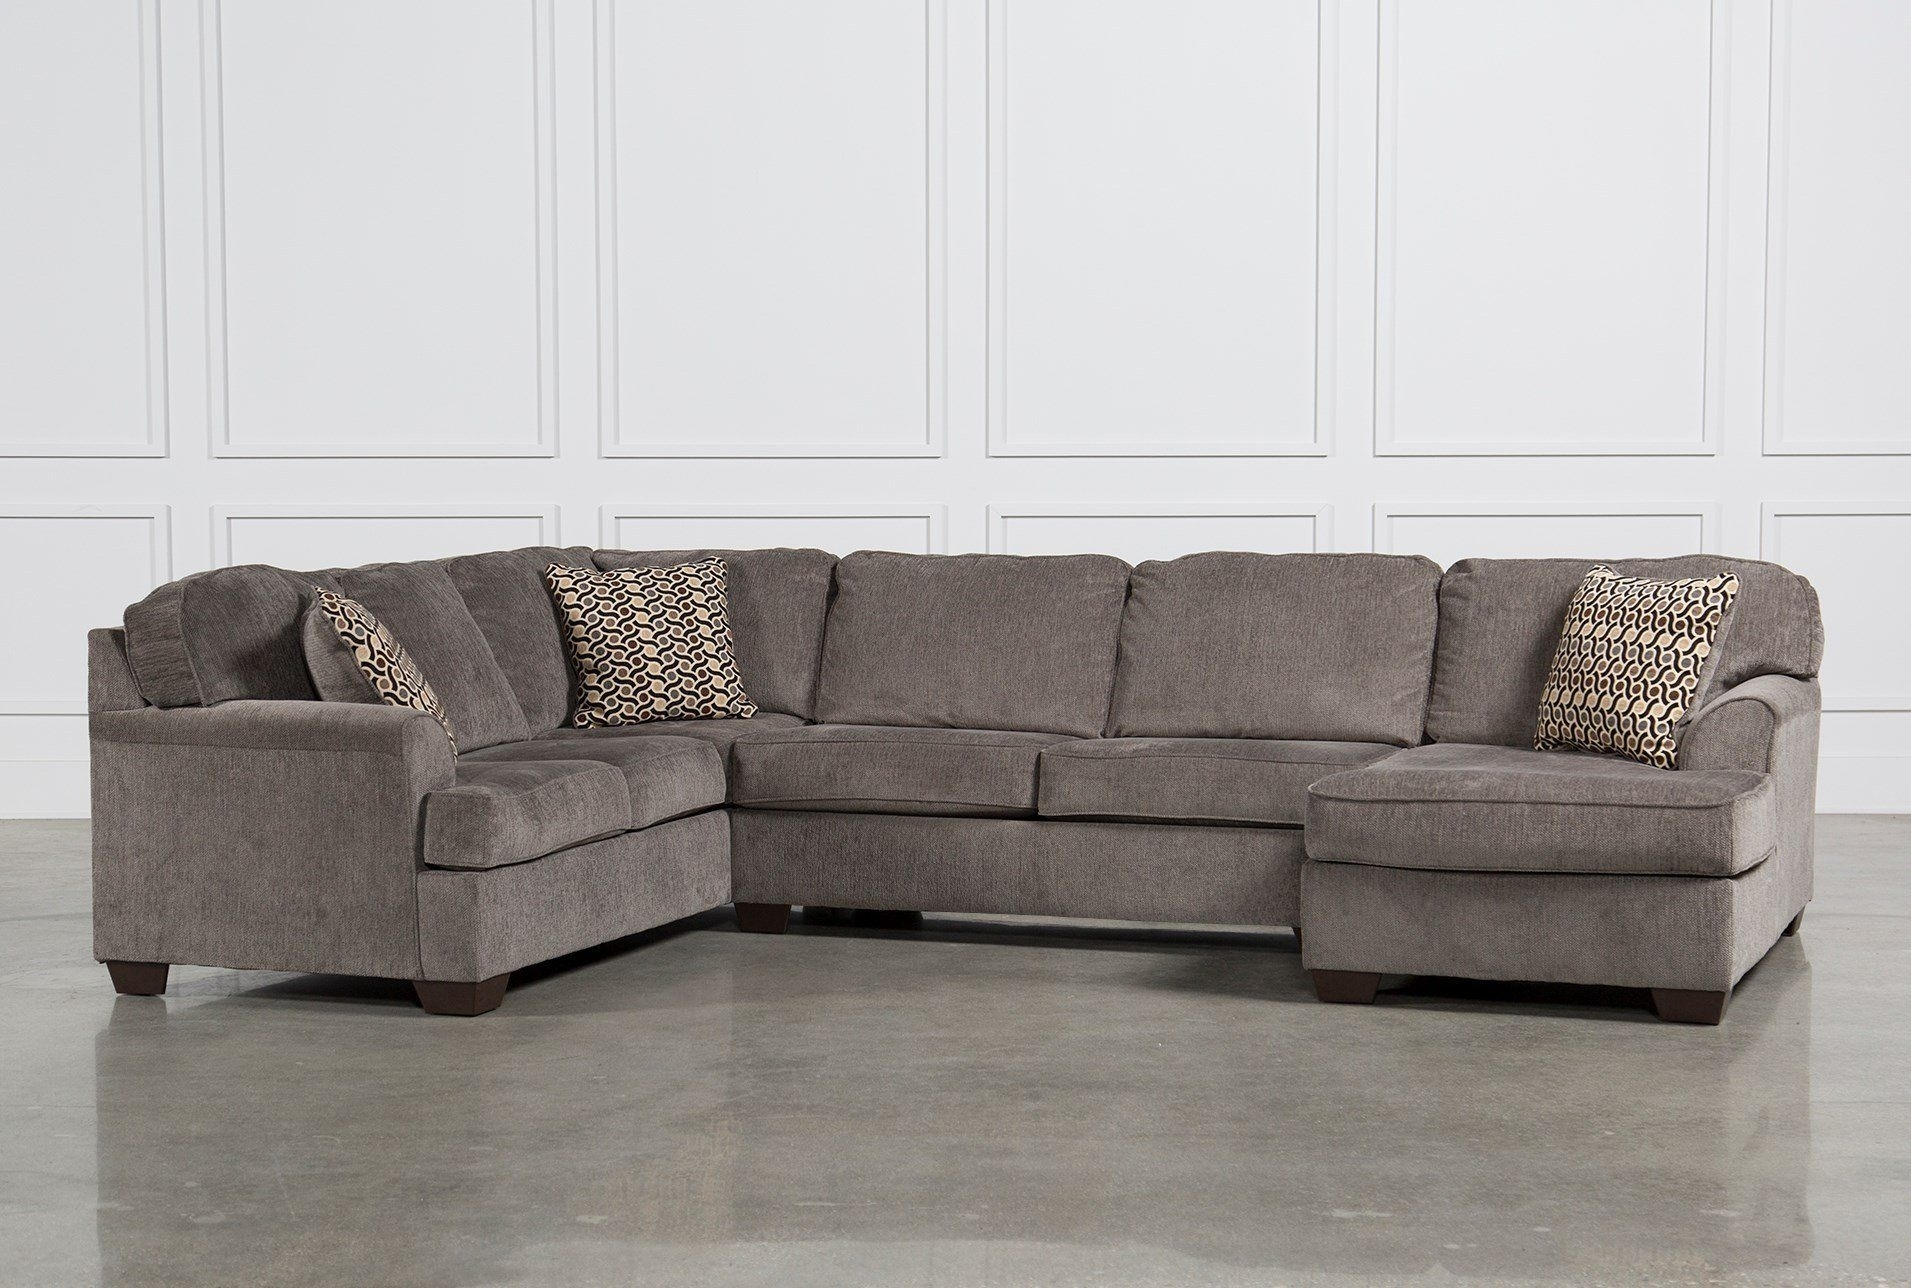 Loric Smoke 3 Piece Sectional W/raf Chaise | Upholstery, Pillows And Within Malbry Point 3 Piece Sectionals With Laf Chaise (Image 21 of 25)